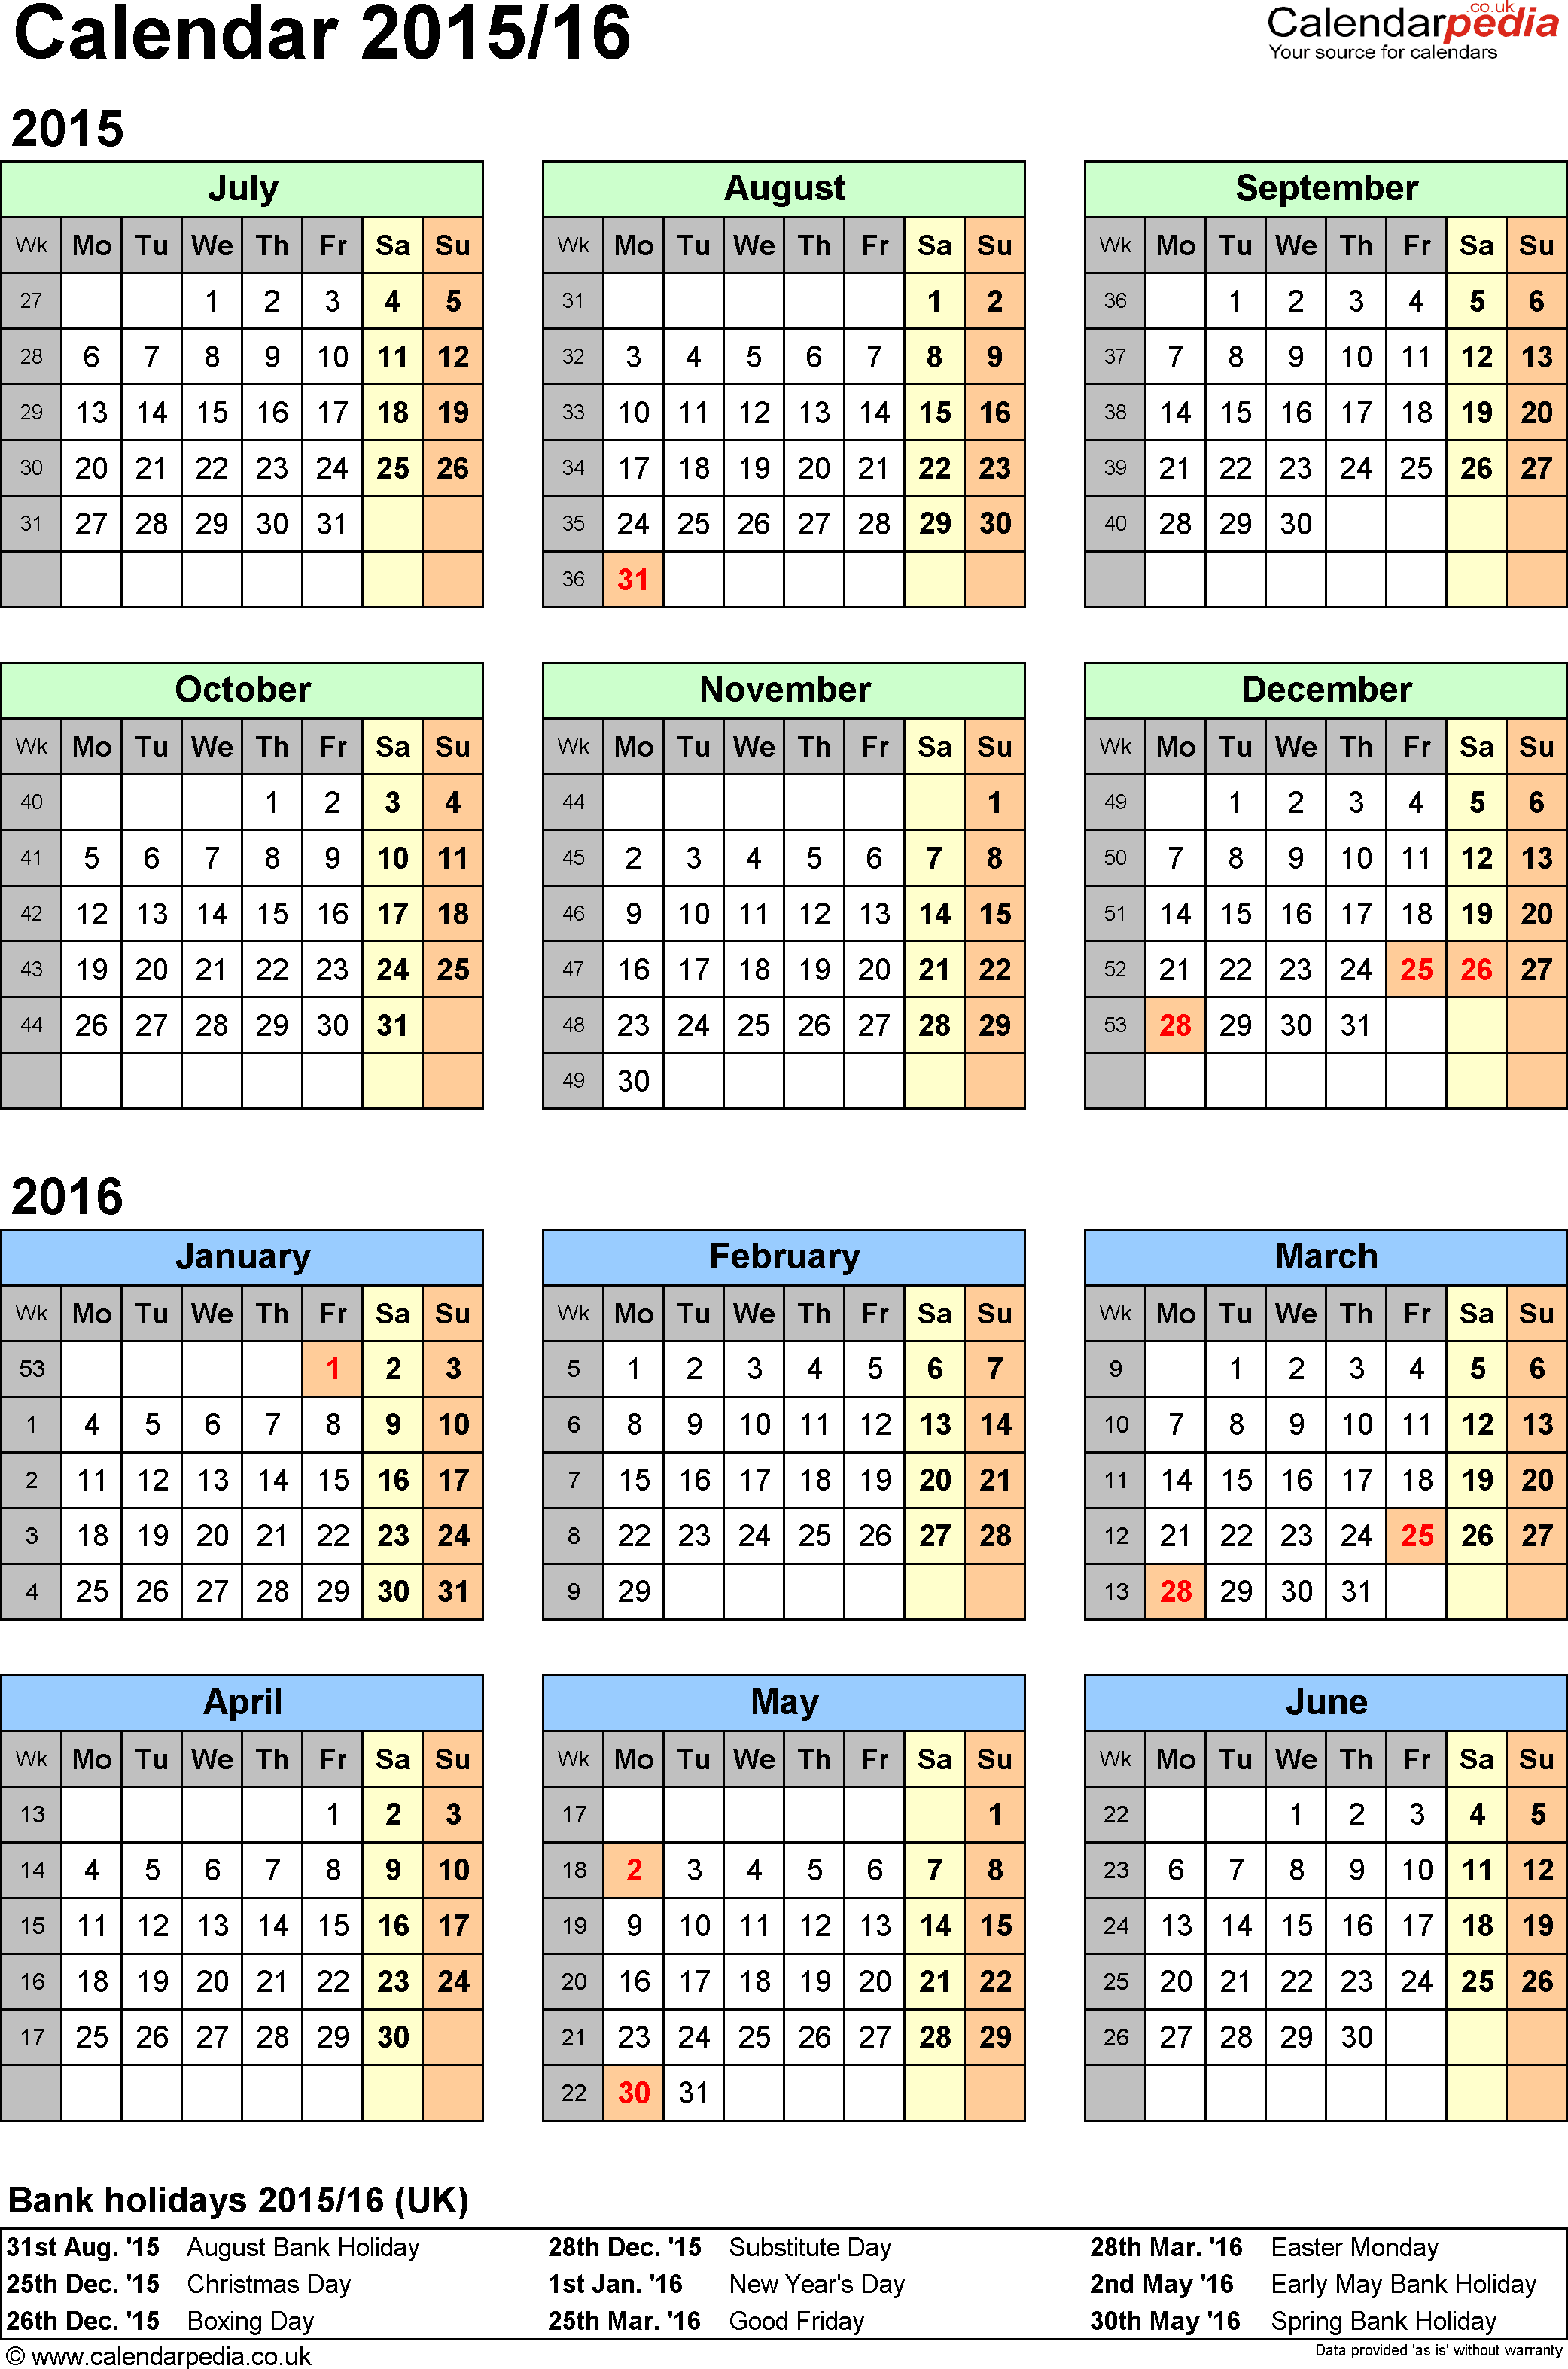 Download Template 2: Word template for split year calendar 2015/2016 (portrait orientation, 1 page, A4)